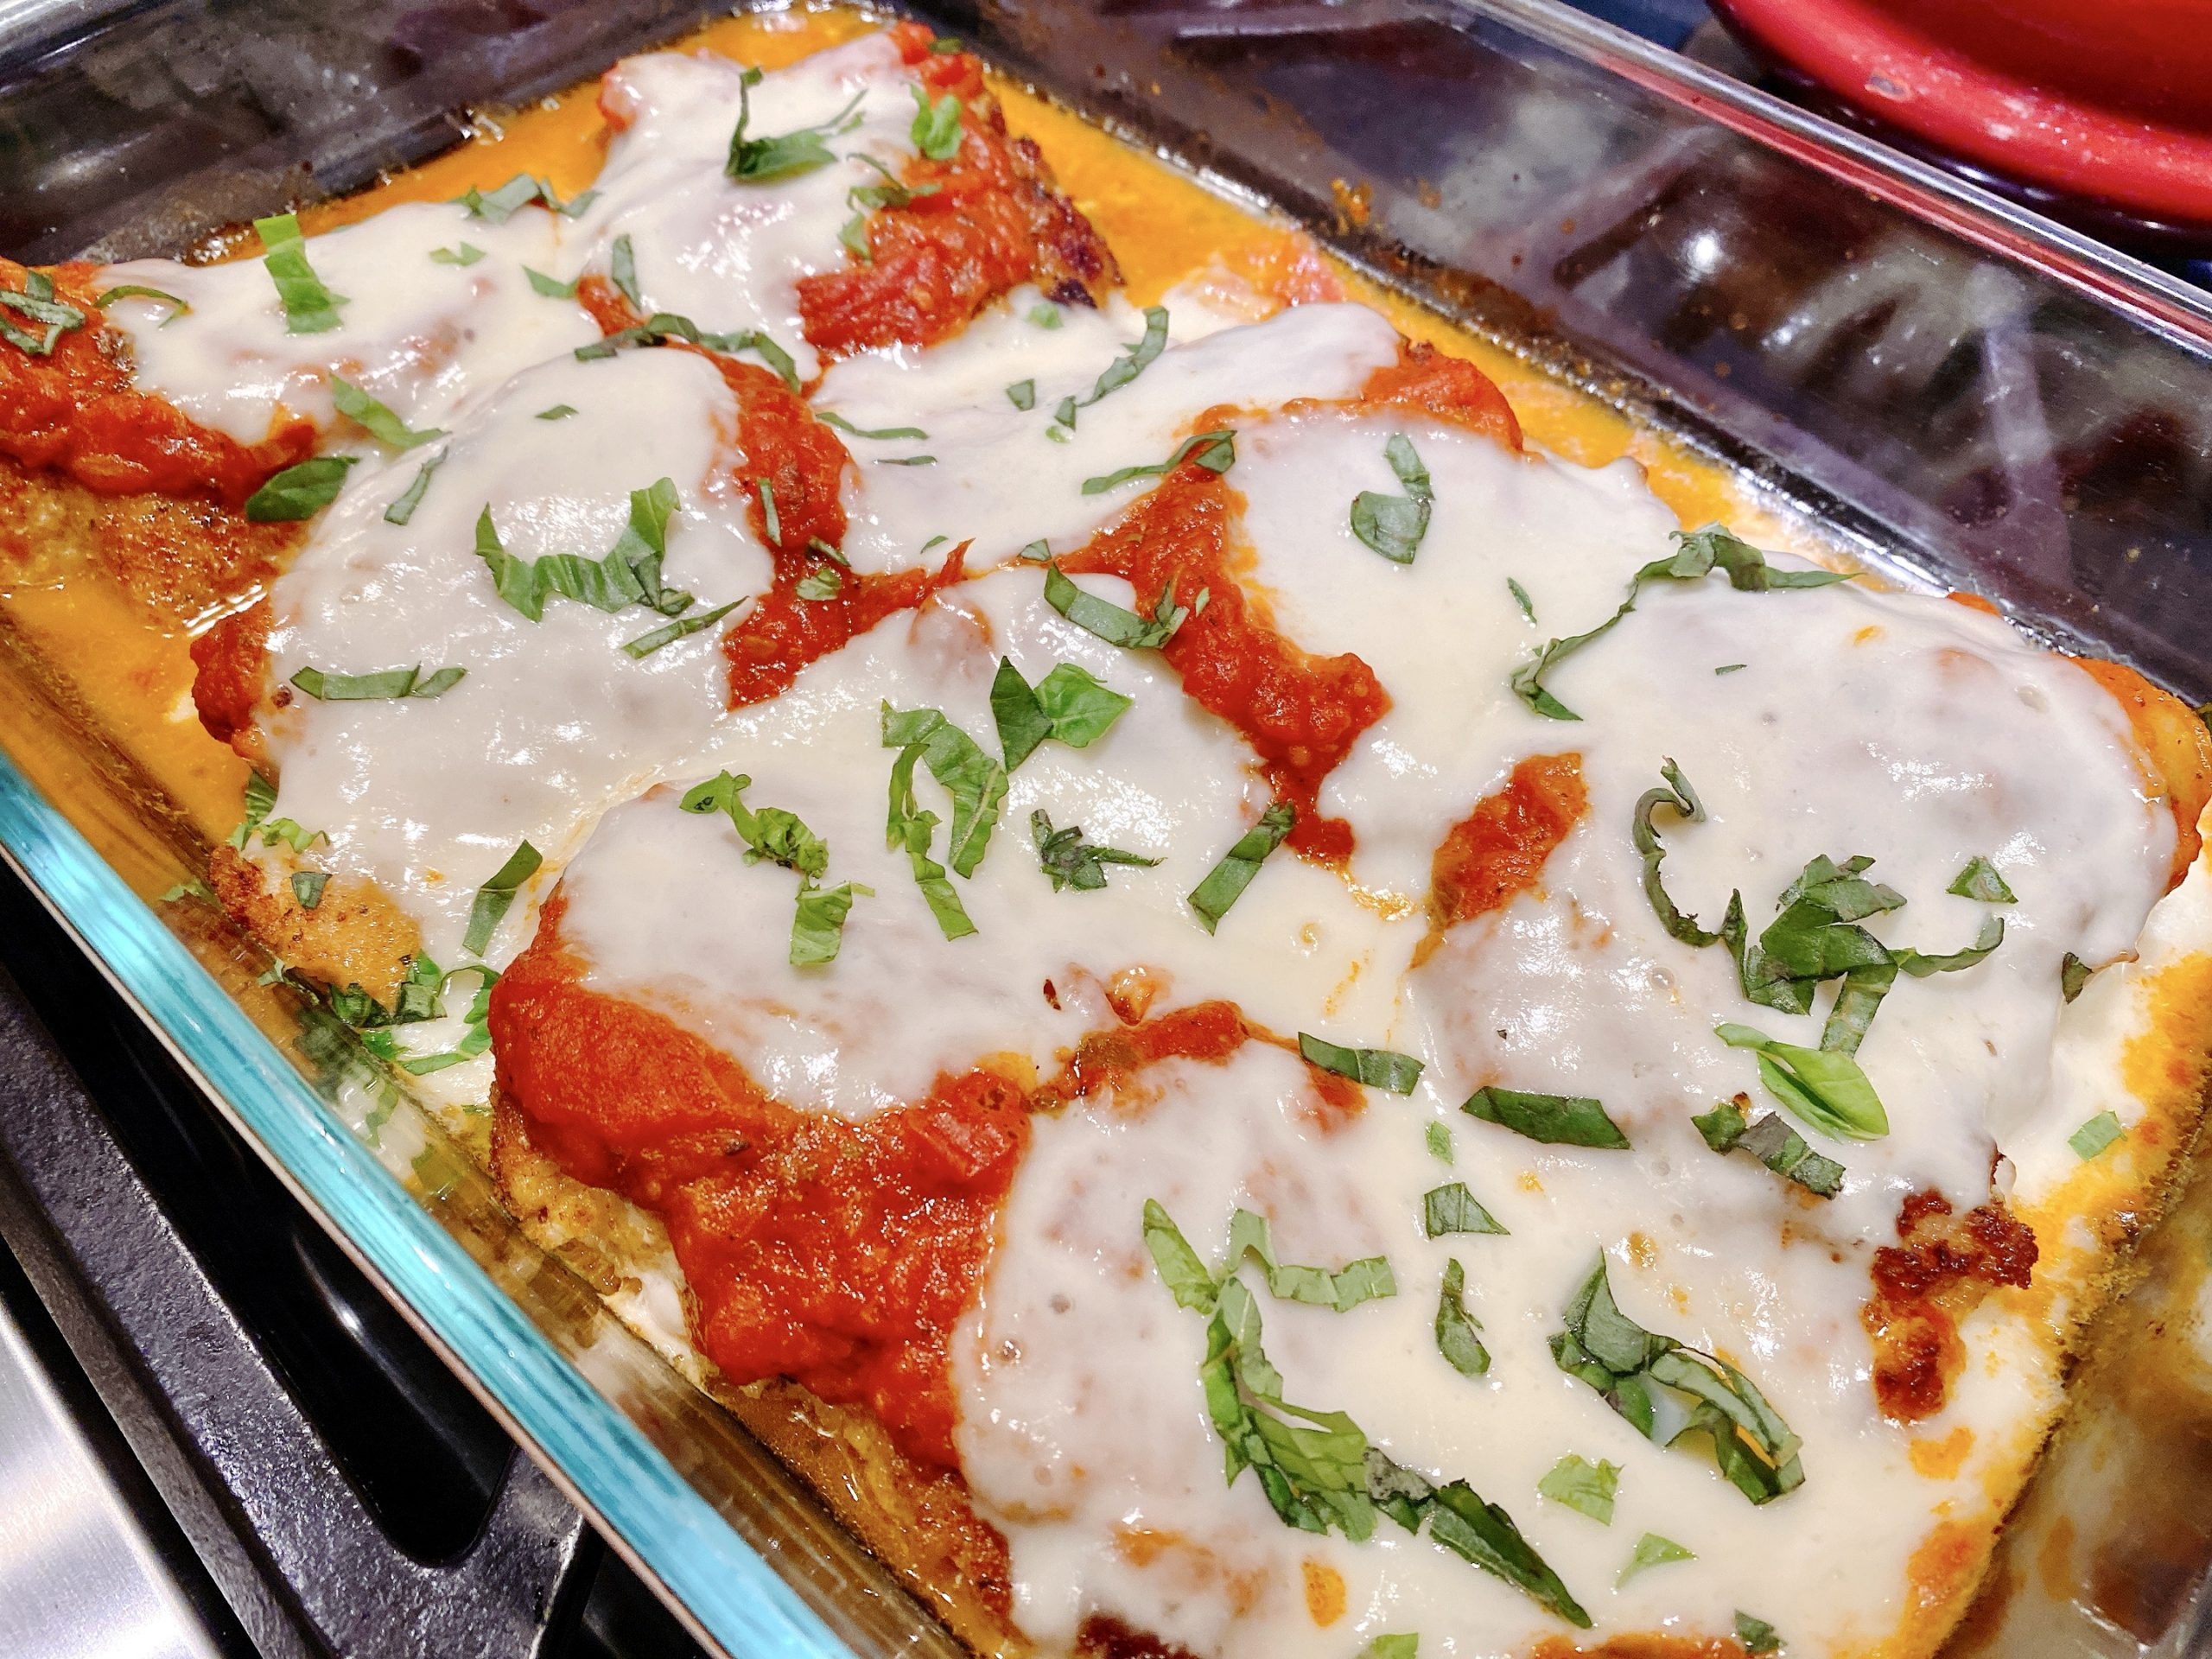 Pan of Chicken Parmesan straight out of the oven with melted cheese and fresh basil.